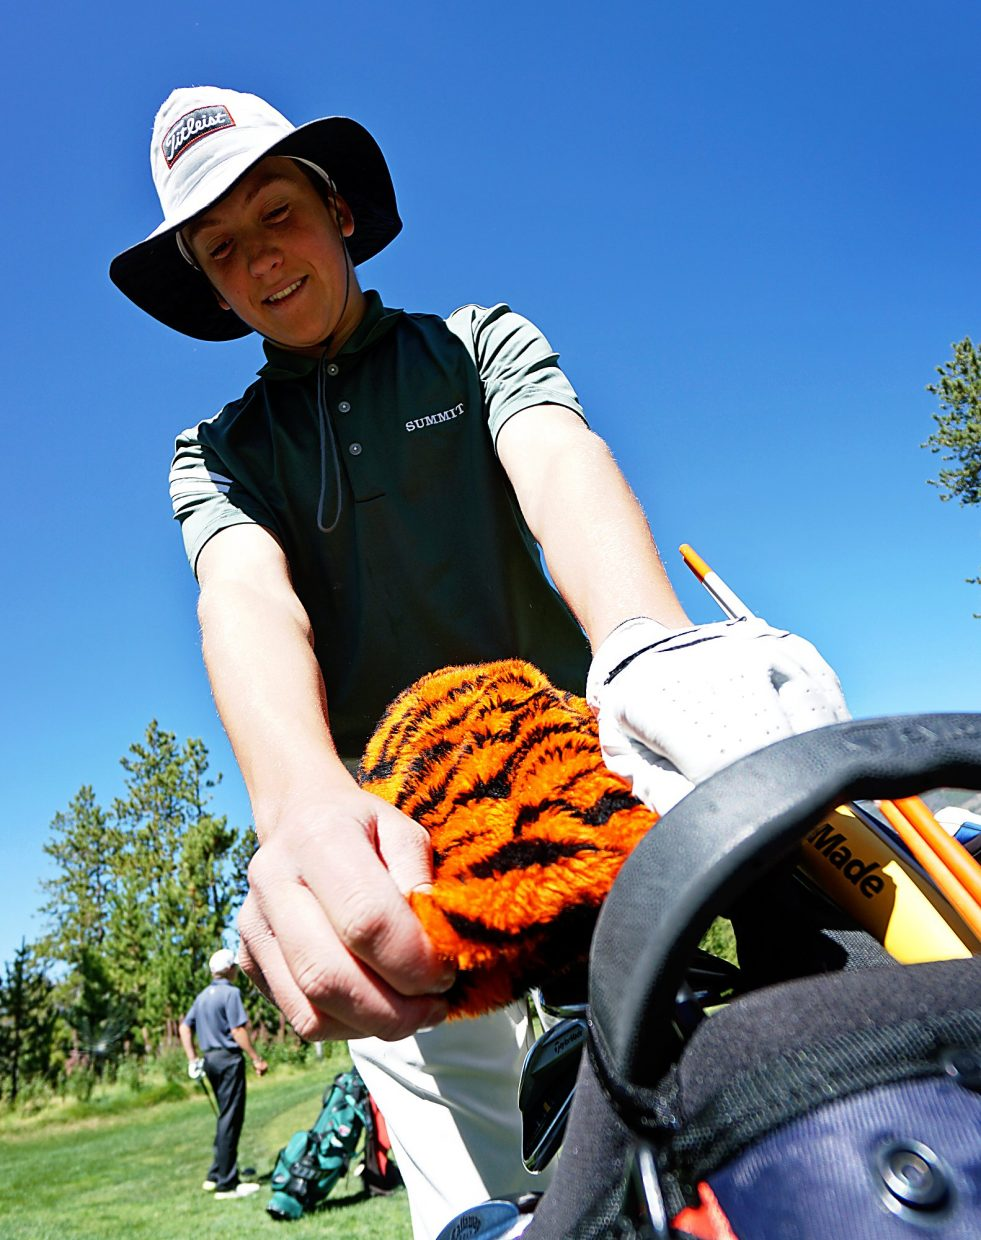 Summit High School's Graham Gaspard places a tiger headcover on his driver after teeing off on the first hole at the Keystone Ranch Invitational in 2015. The tournament returns to the Keystone golf club on Sept. 8.